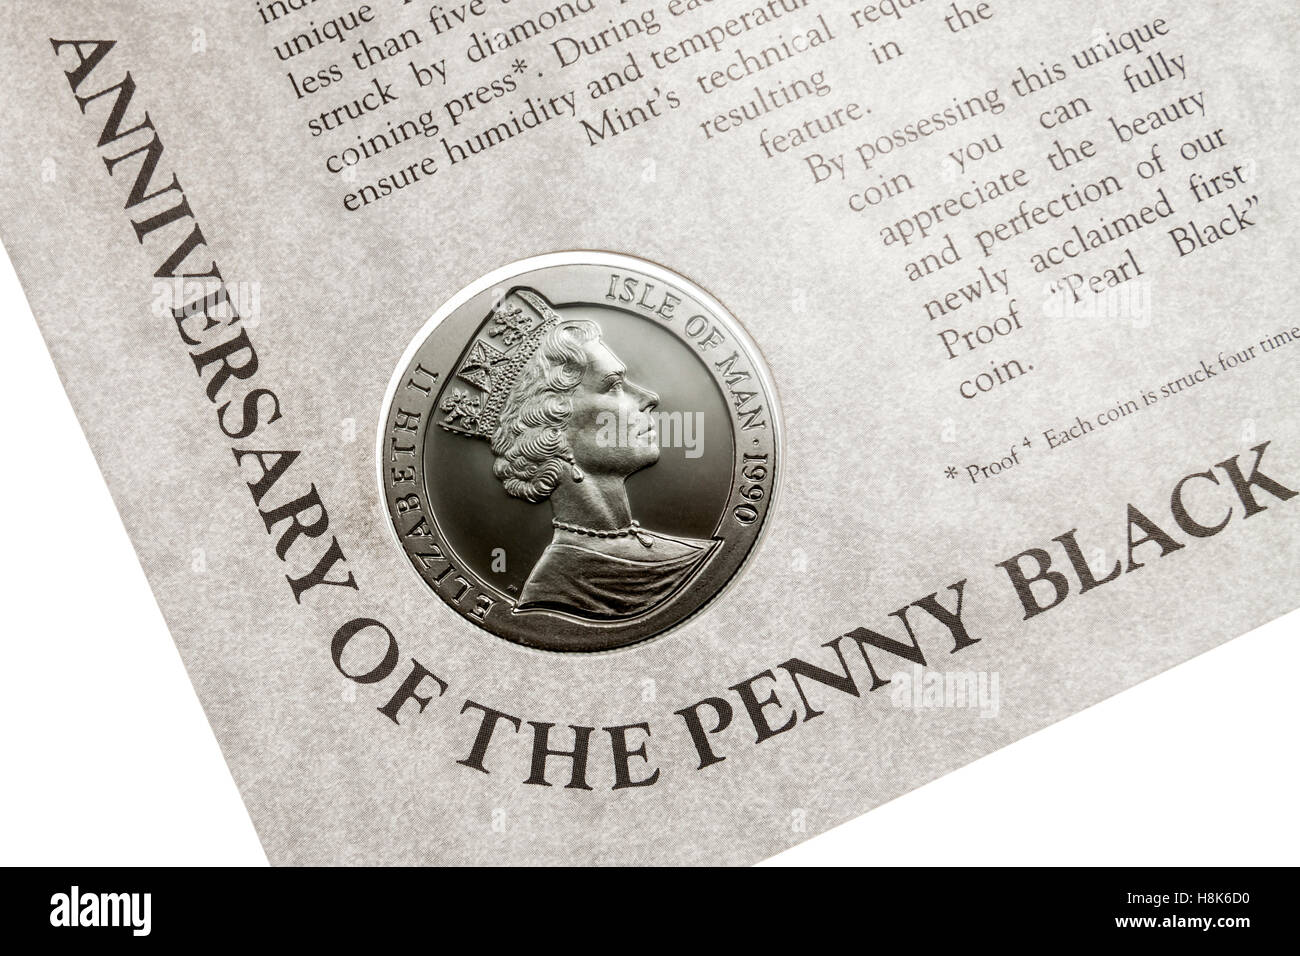 'Pearl Black' coin issued by the Pobjoy Mint in 1990 to commemorate  the 150th anniversary of the Penny - Stock Image